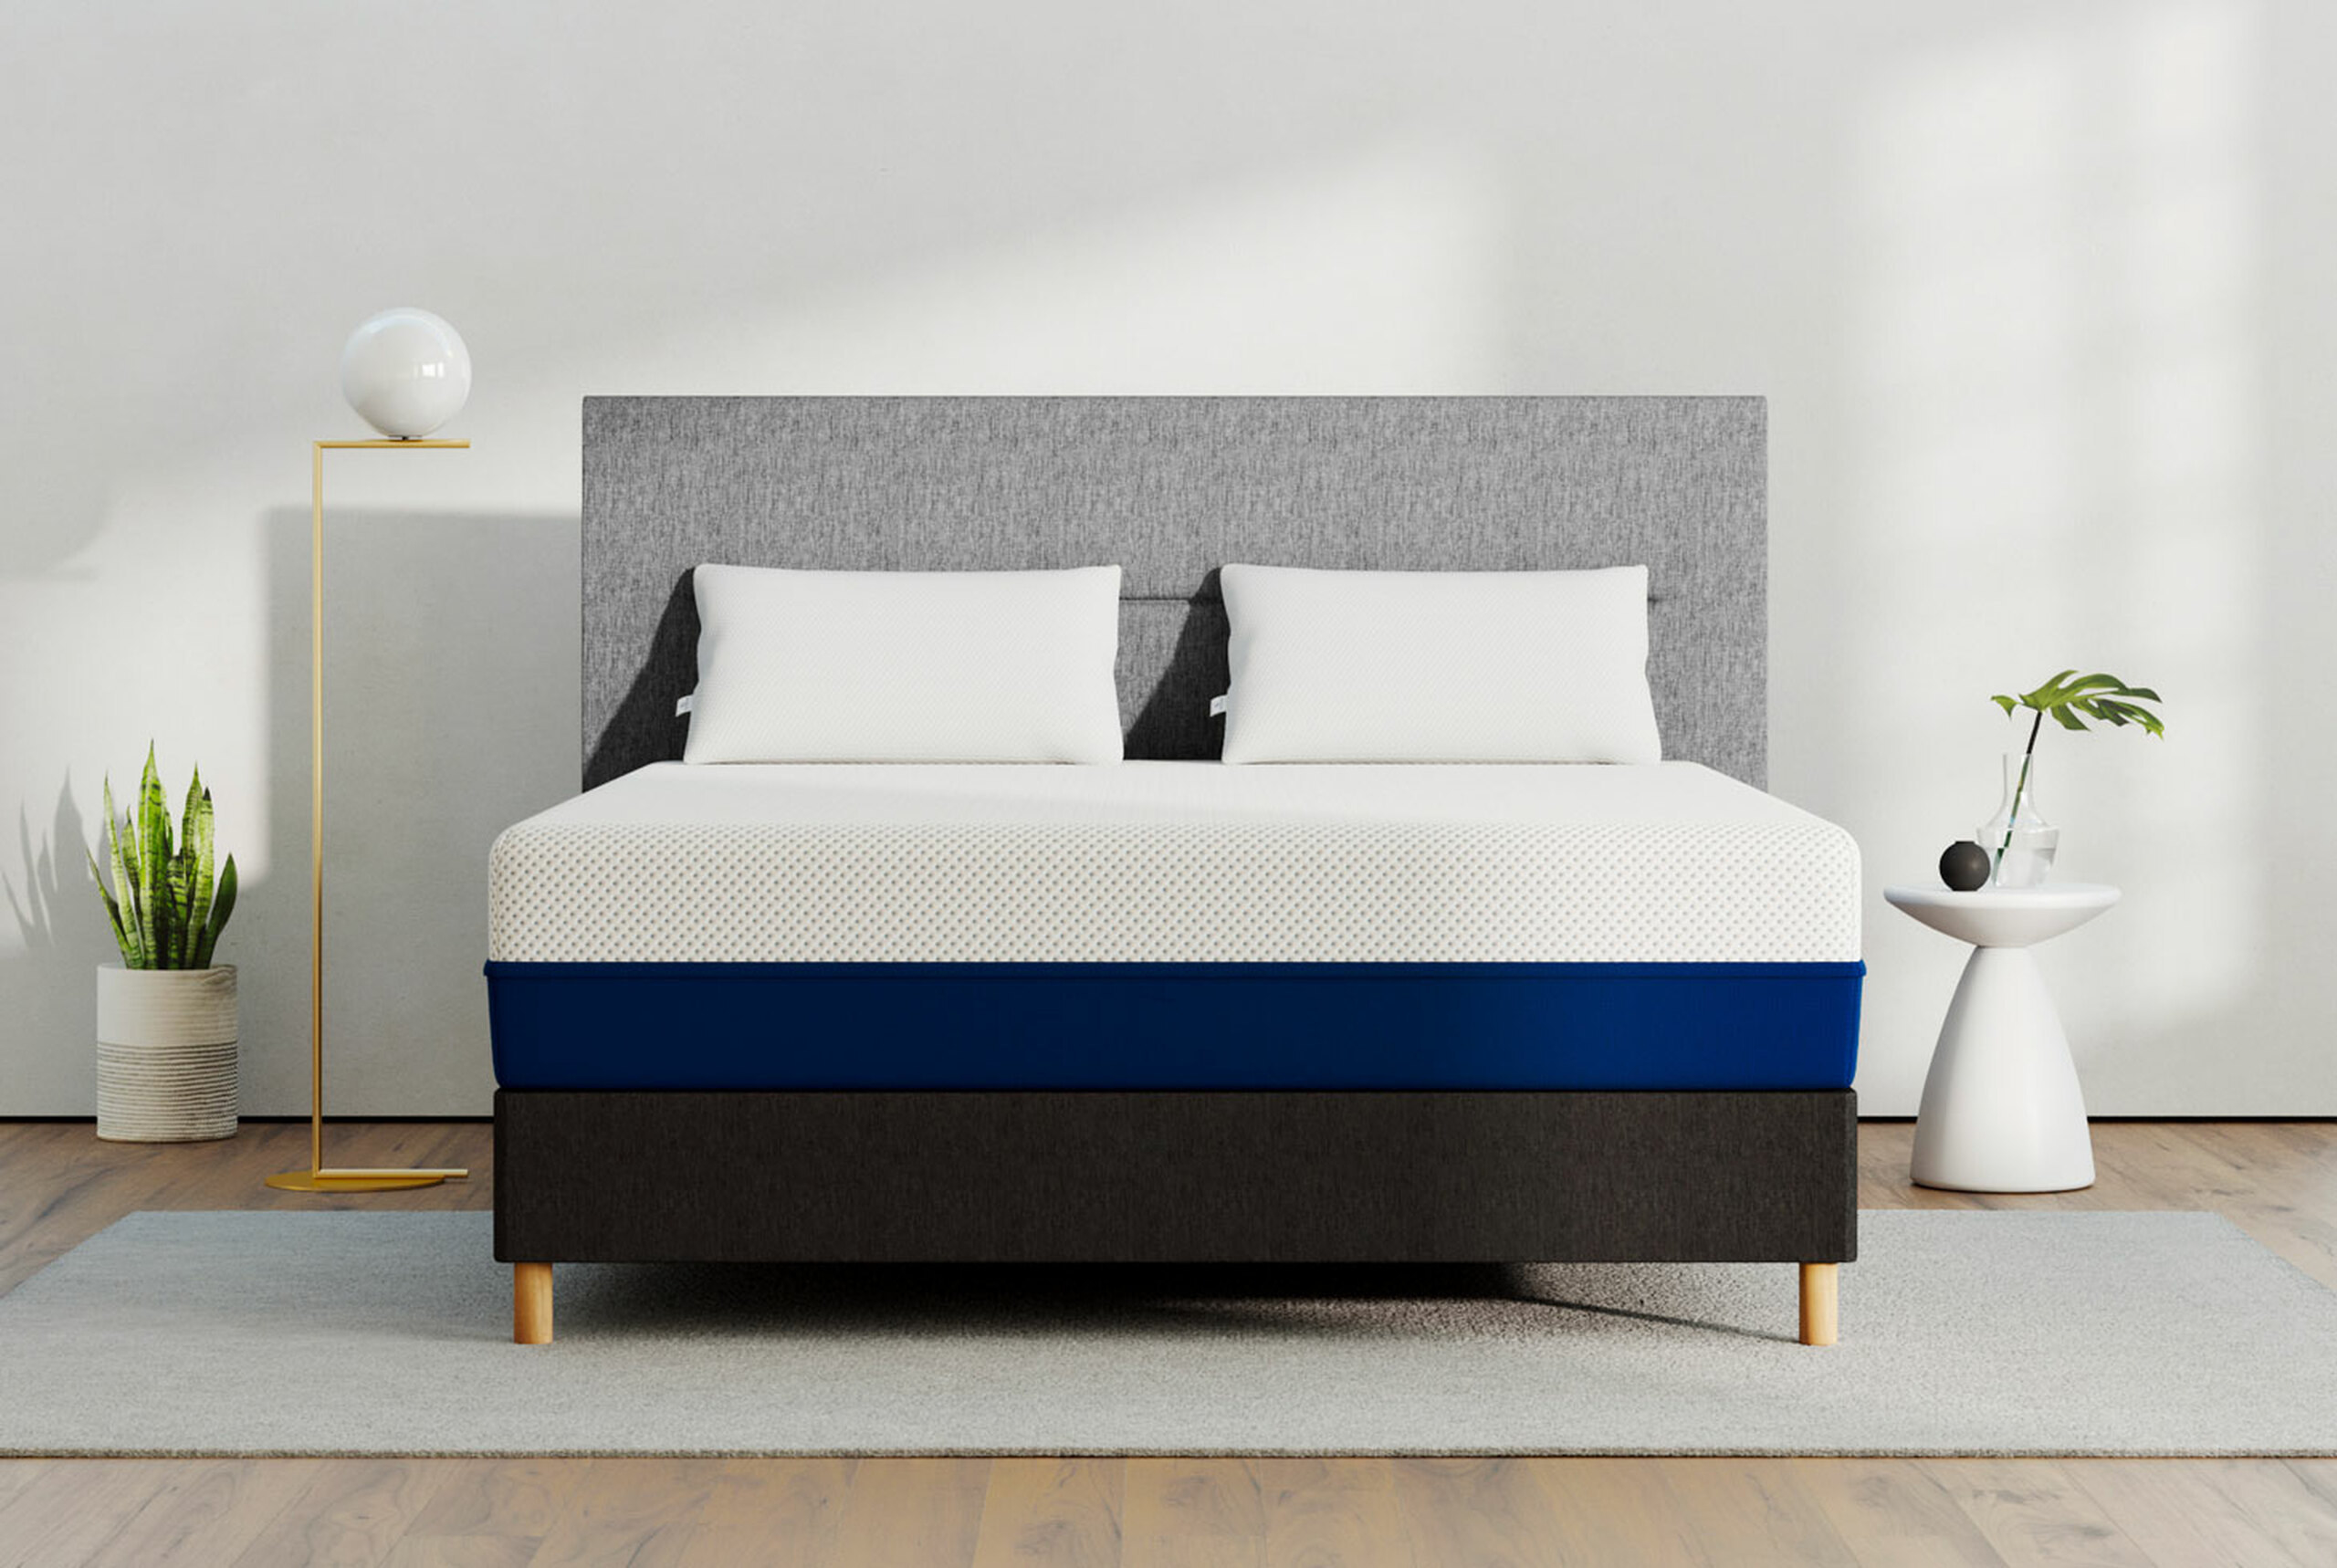 the mattress with white on top half and dark blue on the bottom half